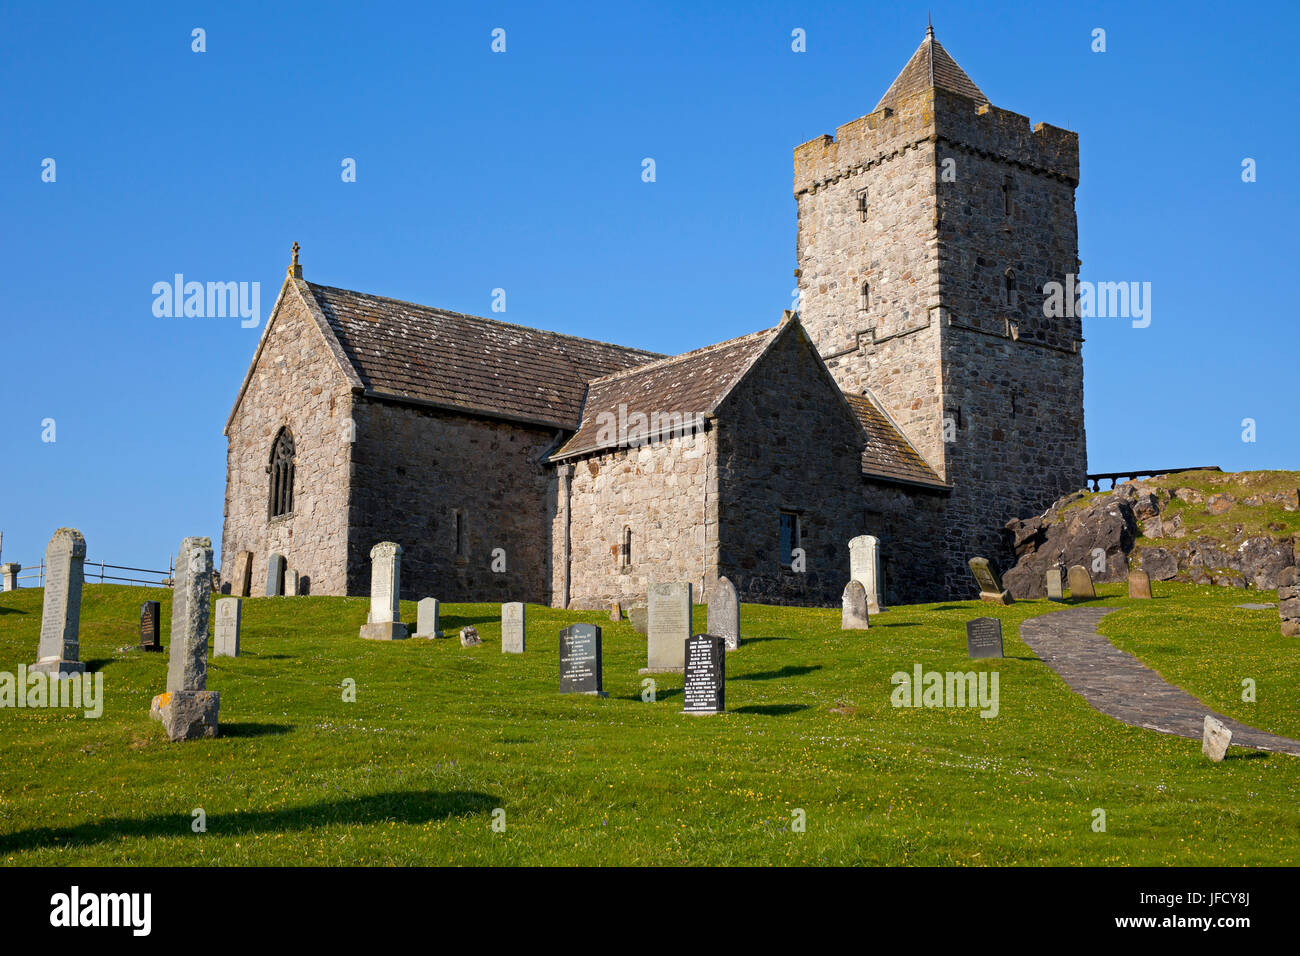 Tur Chlimain St Clements Church, Rodel, Isle of Harris, Scotland - Stock Image